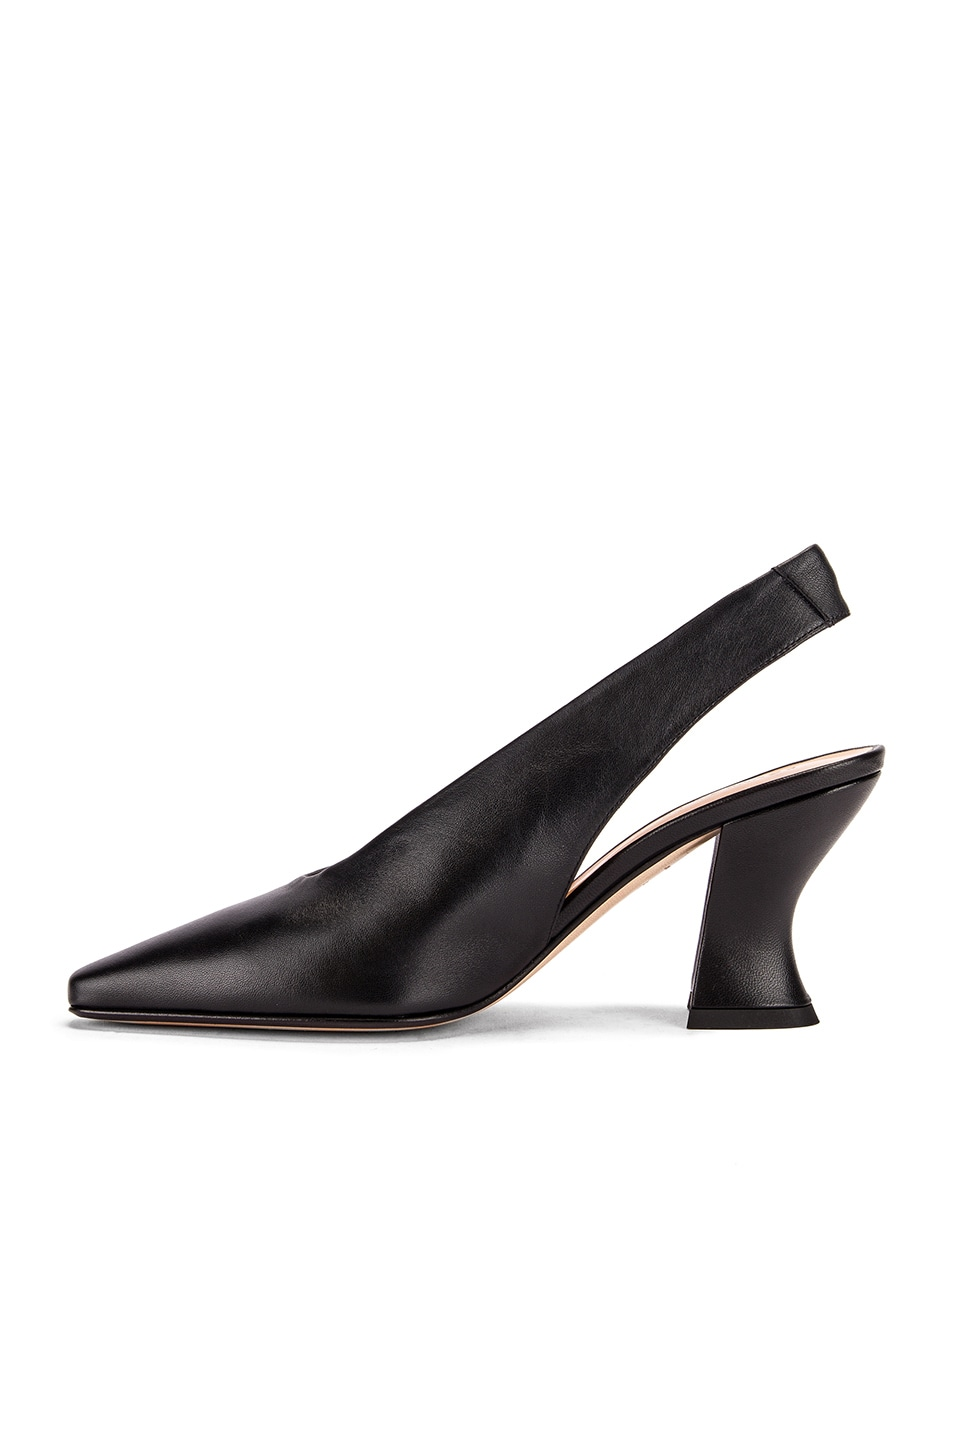 Image 5 of Bottega Veneta Almond Slingback Kitten Heels in Black